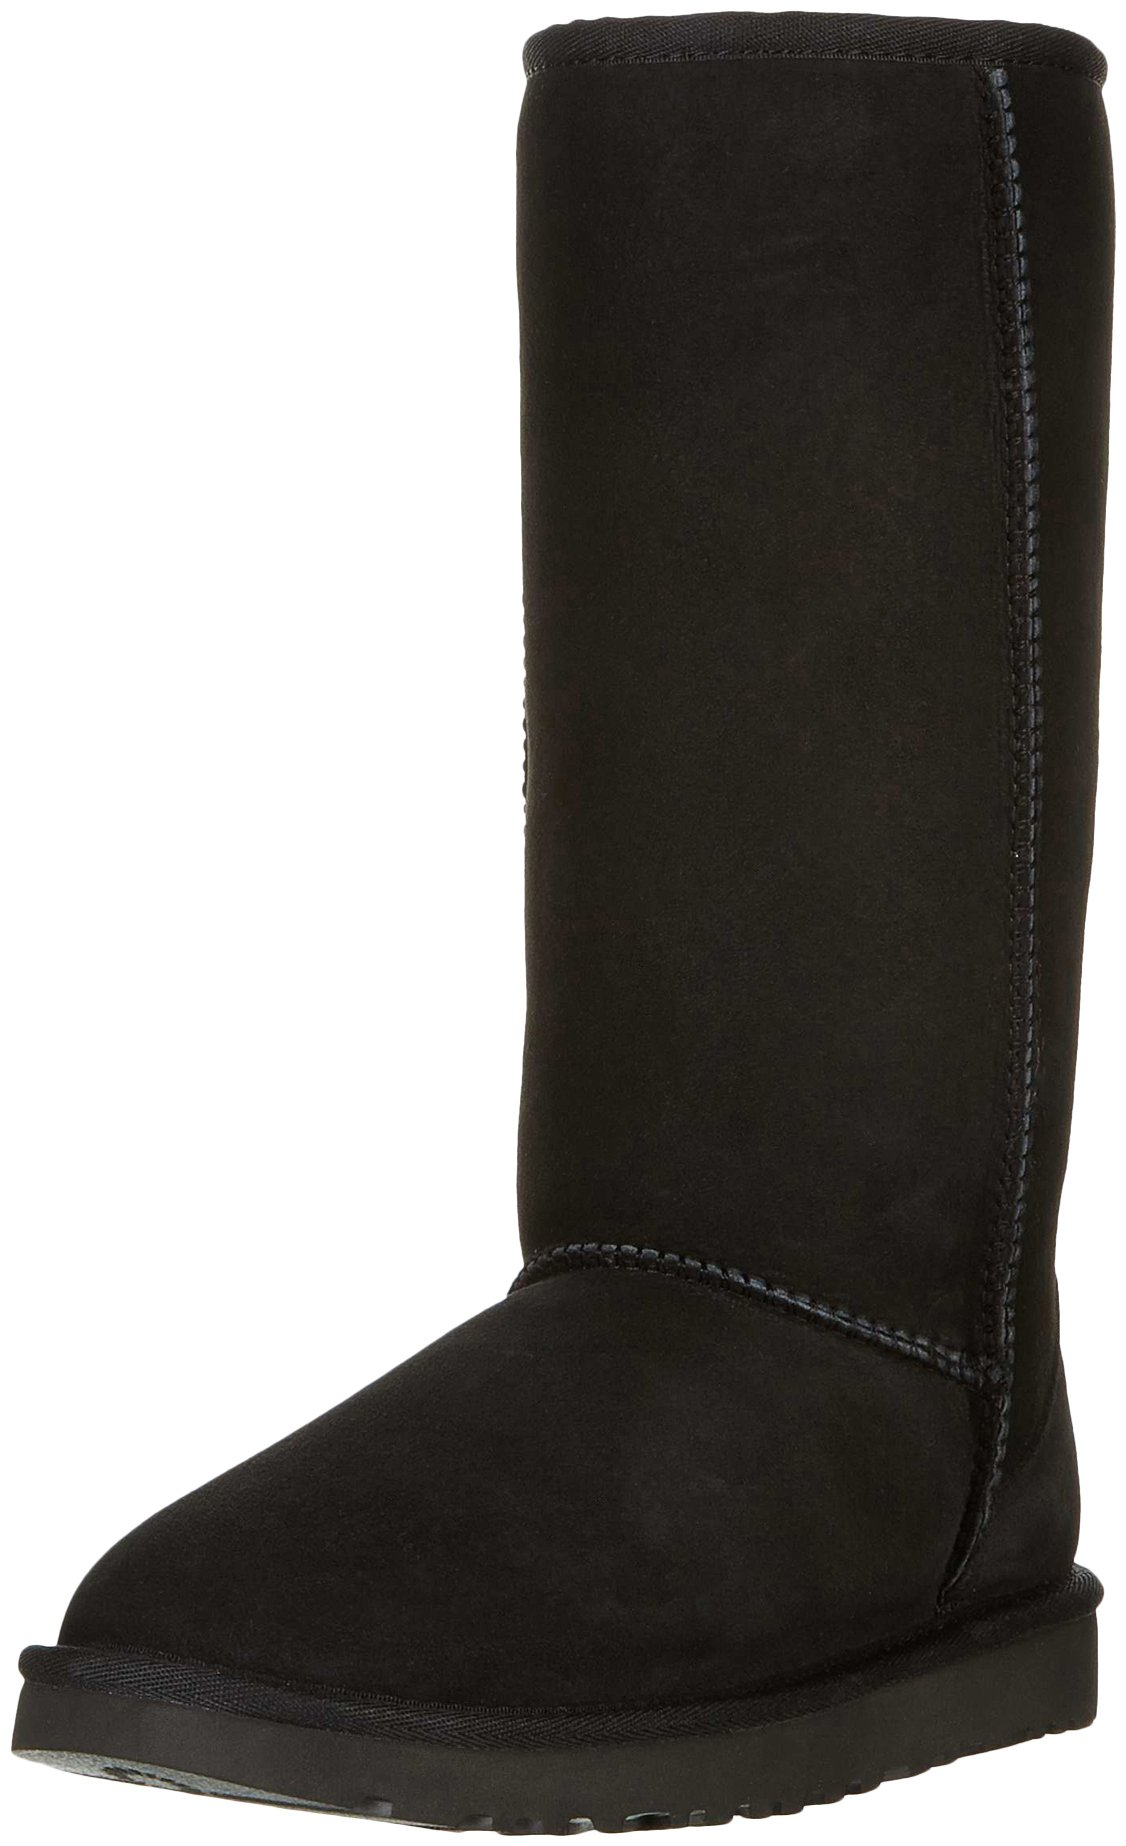 UGG Women's Classic Tall II Winter Boot, Black, 8 B US by UGG